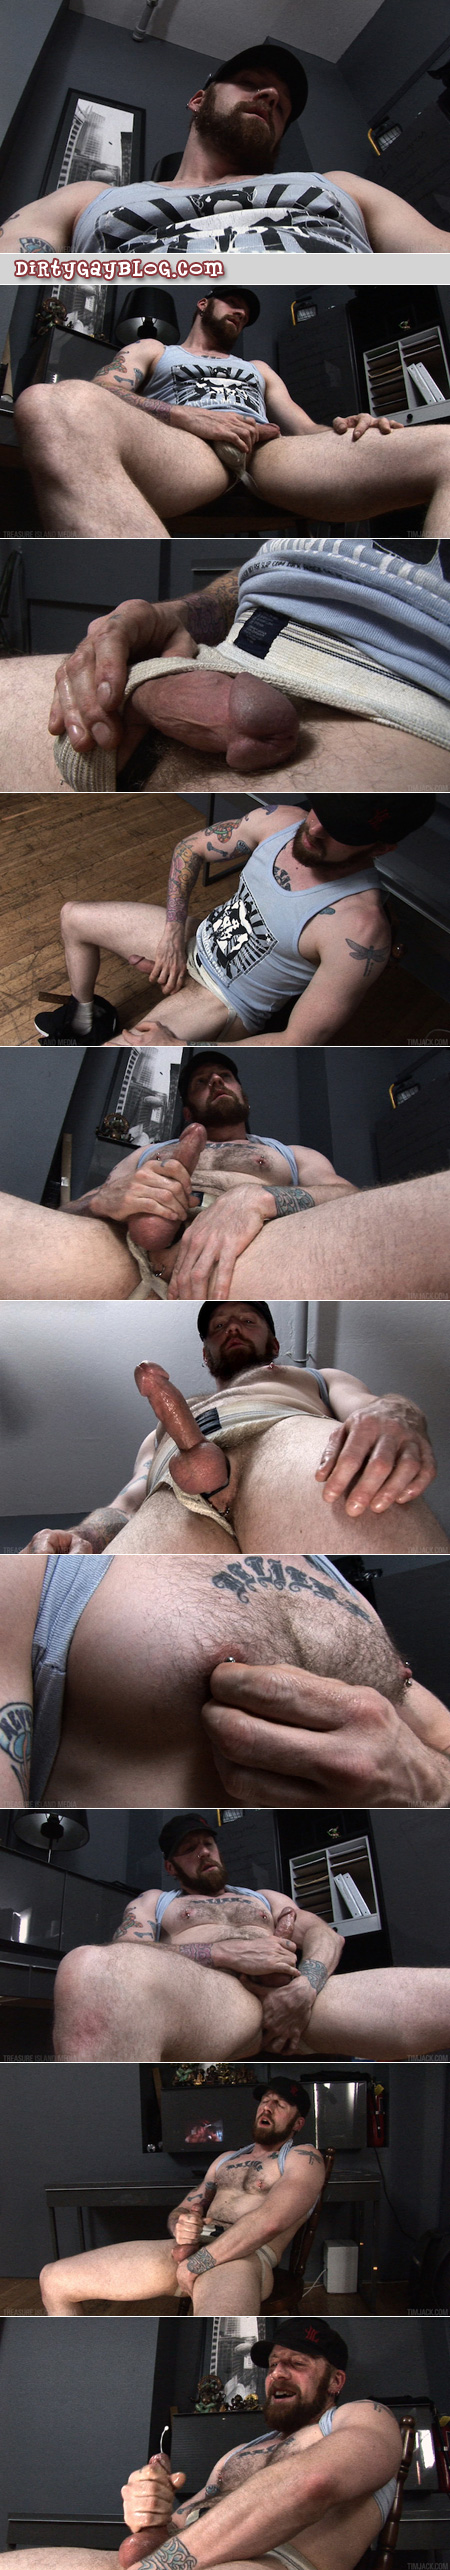 Beefy, hairy, pierced ginger beating off in an old jockstrap.